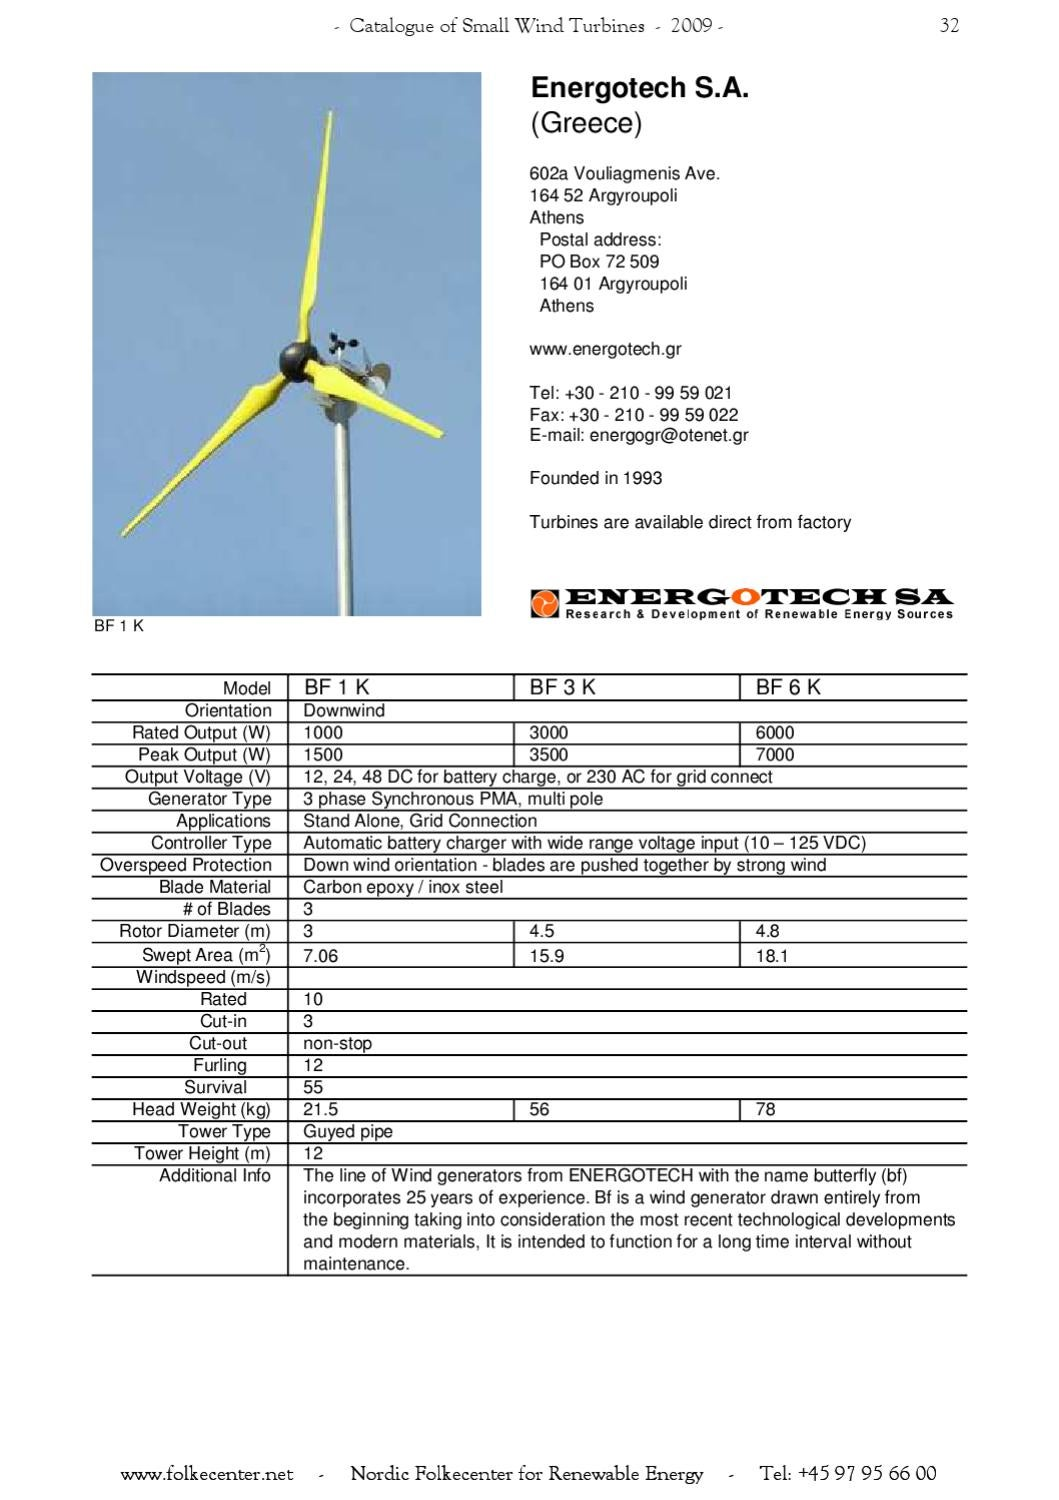 small wind turbines 2009 by Lucce Pucce - issuu